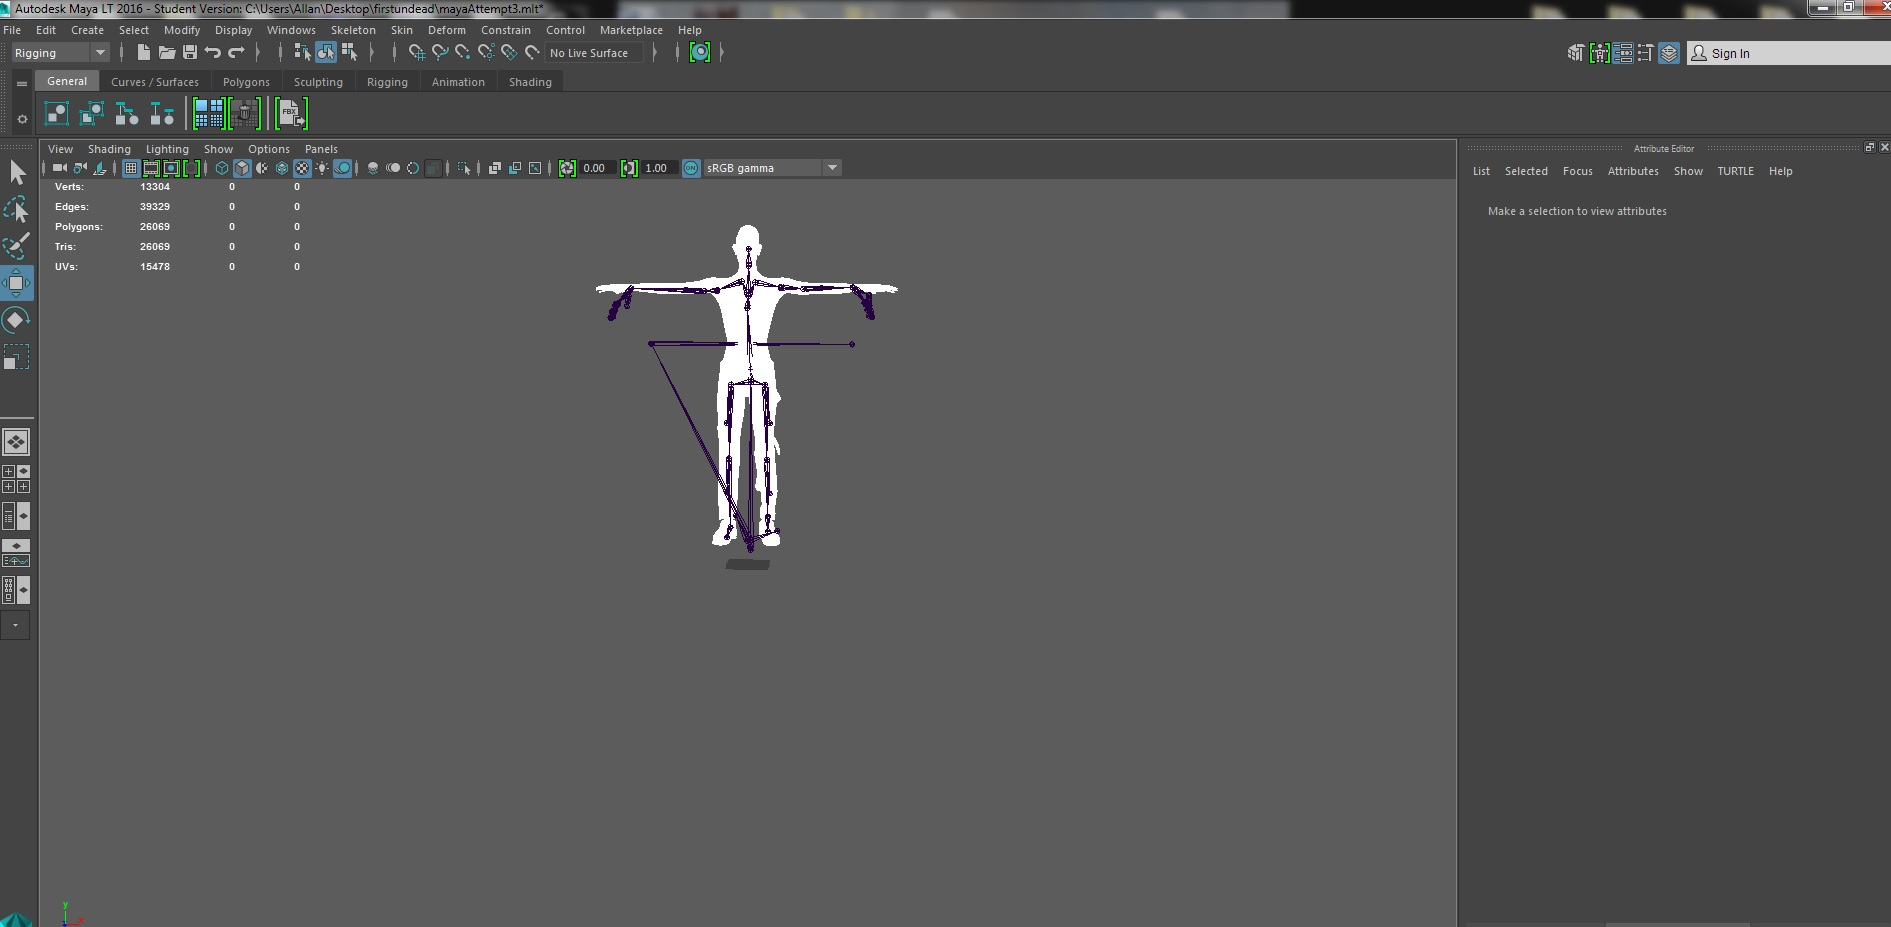 Solved: Fairly new: Skinning and rigging assistance - Autodesk